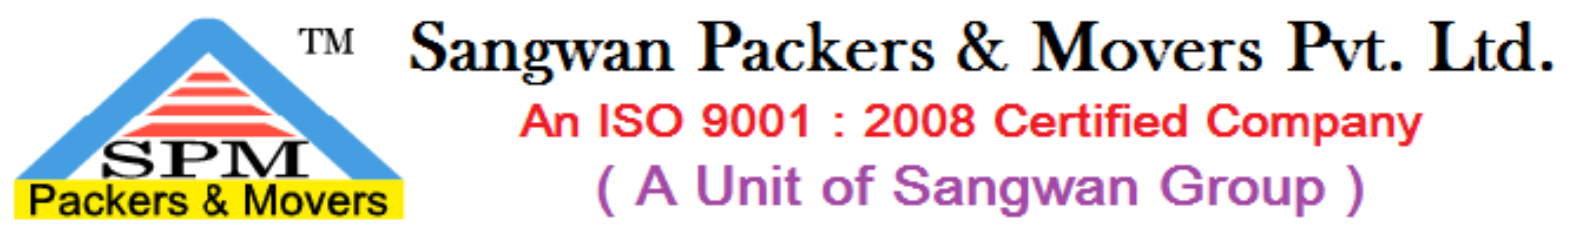 Sangwan packers and movers bangalore